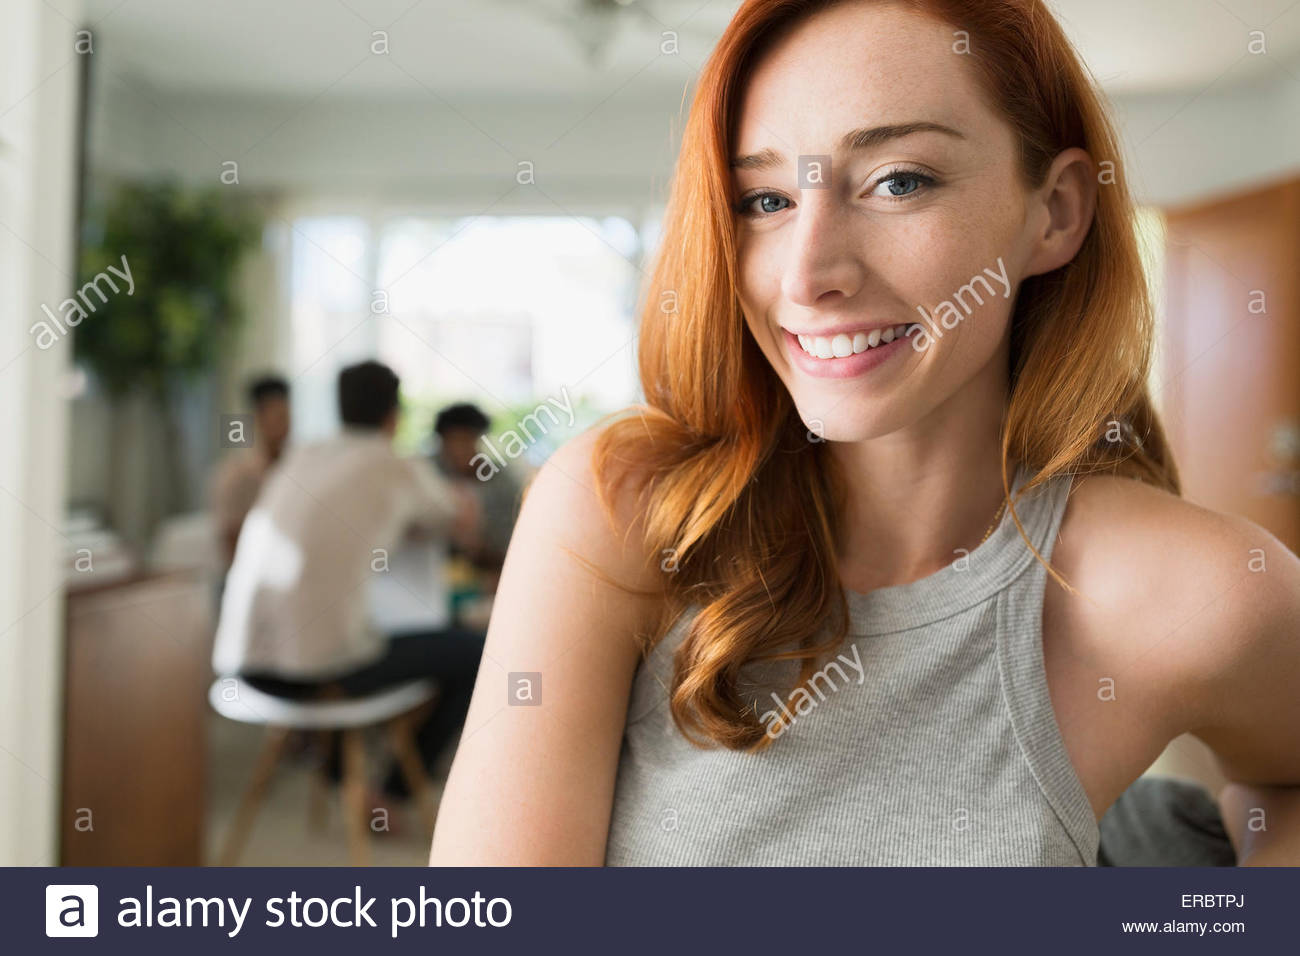 Portrait of smiling woman with red hair Photo Stock